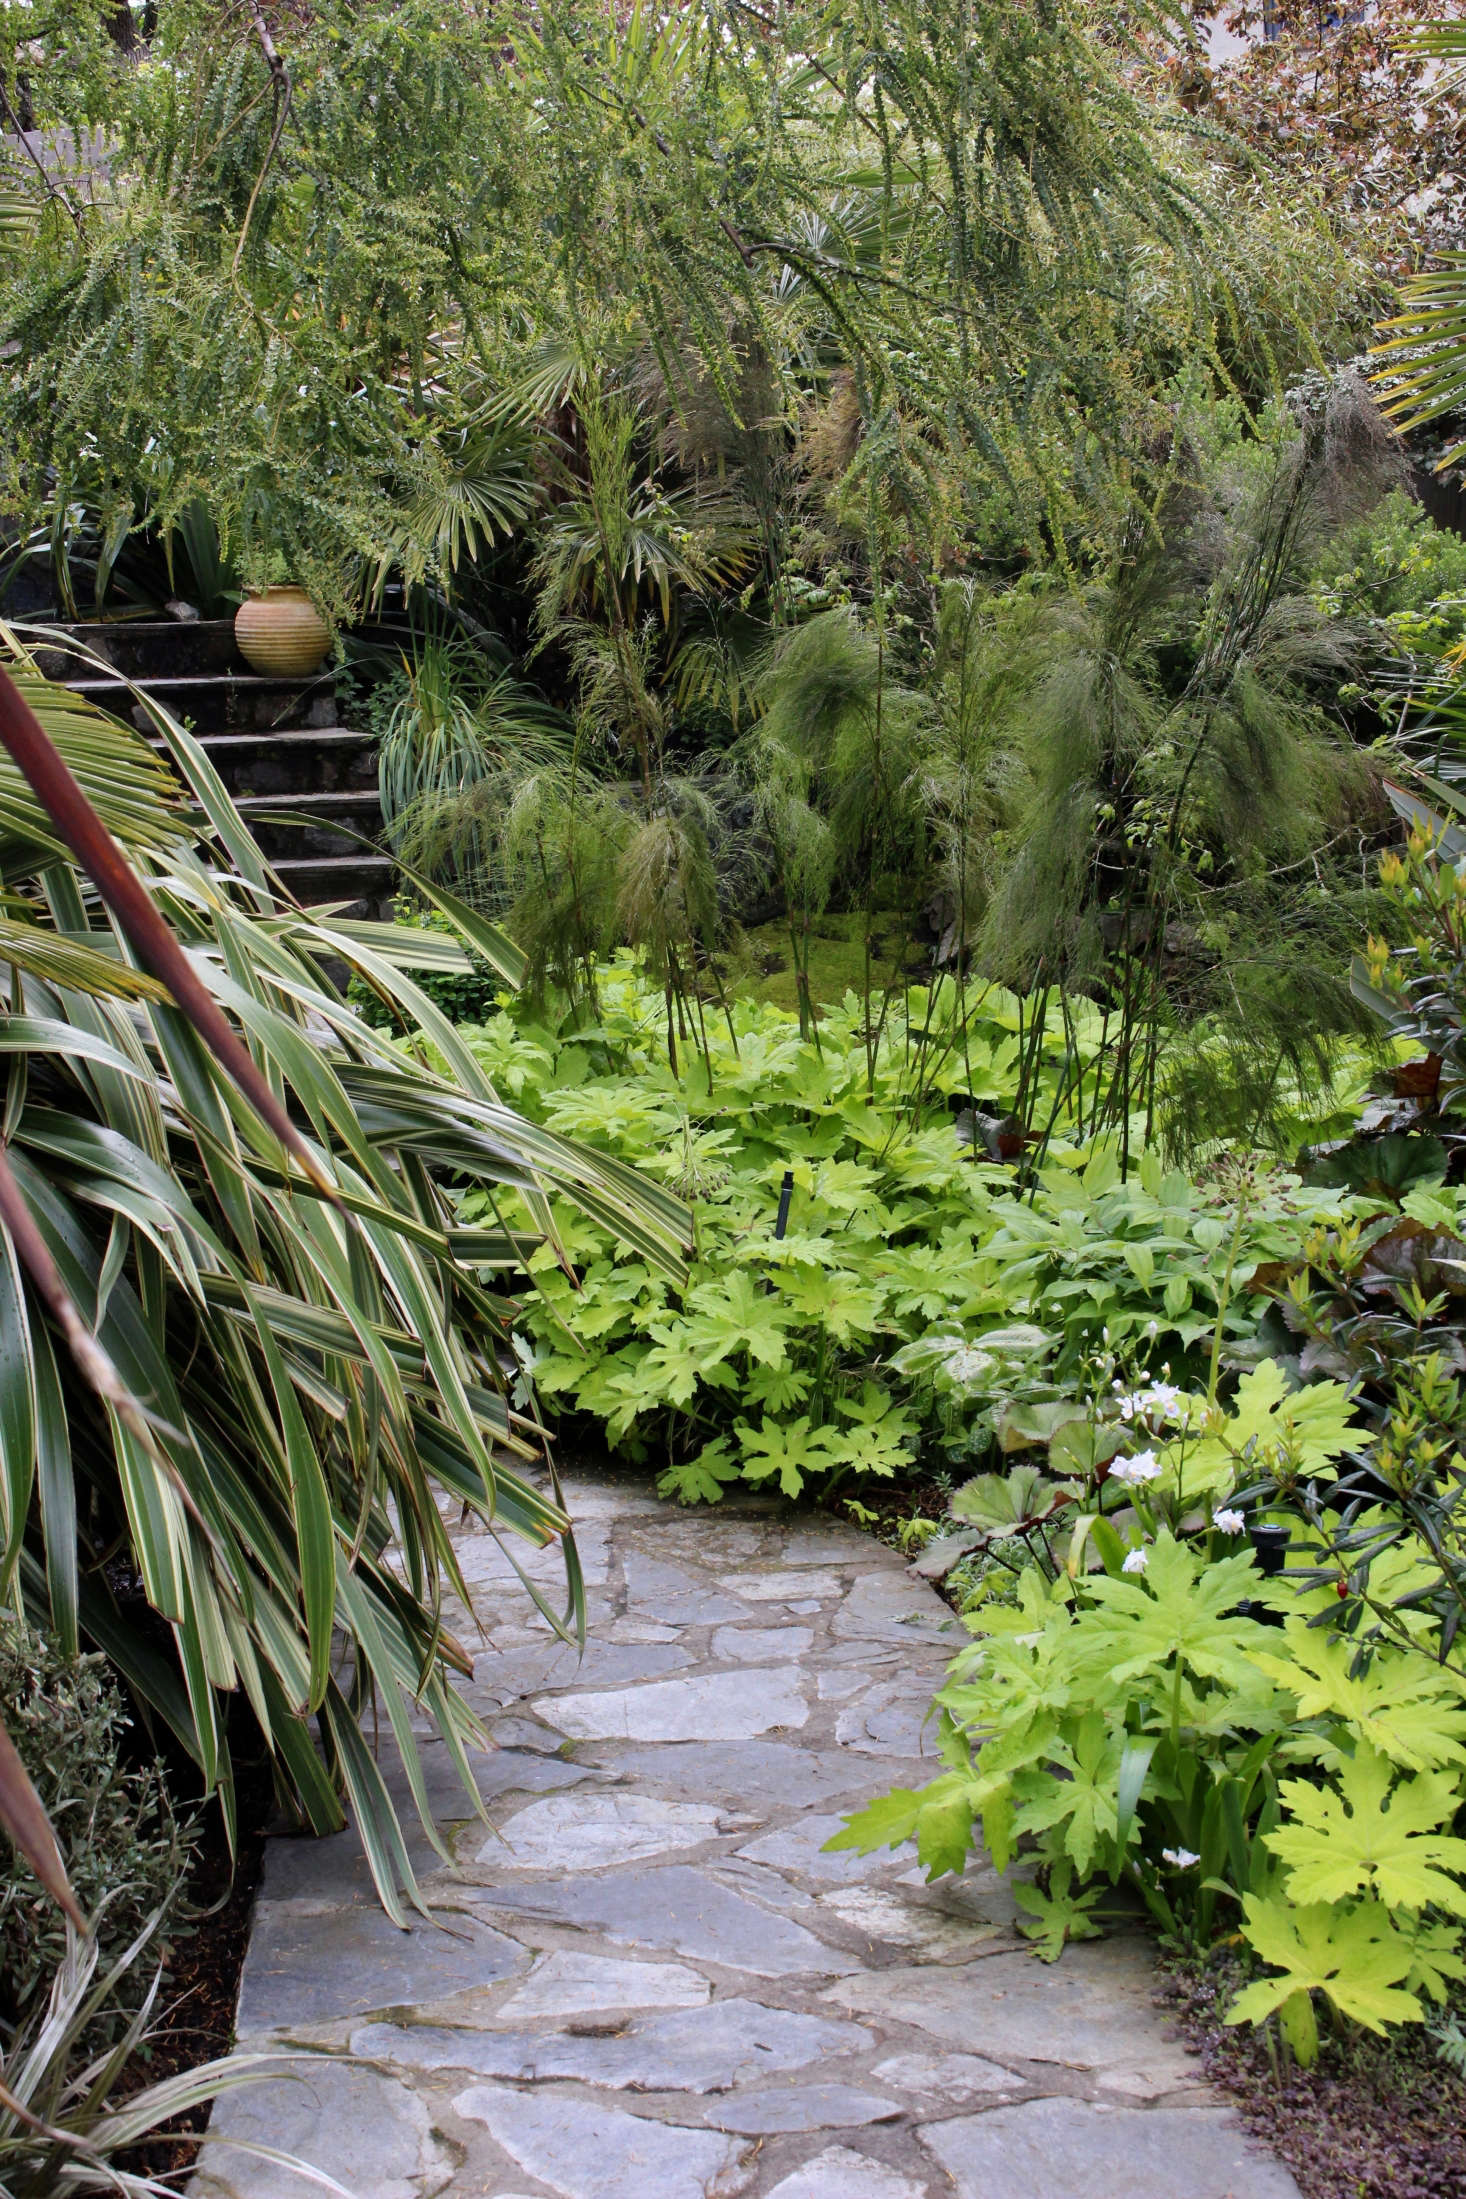 The entrance pathway is lined with Petasites 'Golden Palms', from which the Australian plant Baloskion tetraphyllum rises. Acacia pravissimia arches overhead, with Phormium cookianum 'Tricolor' at left.